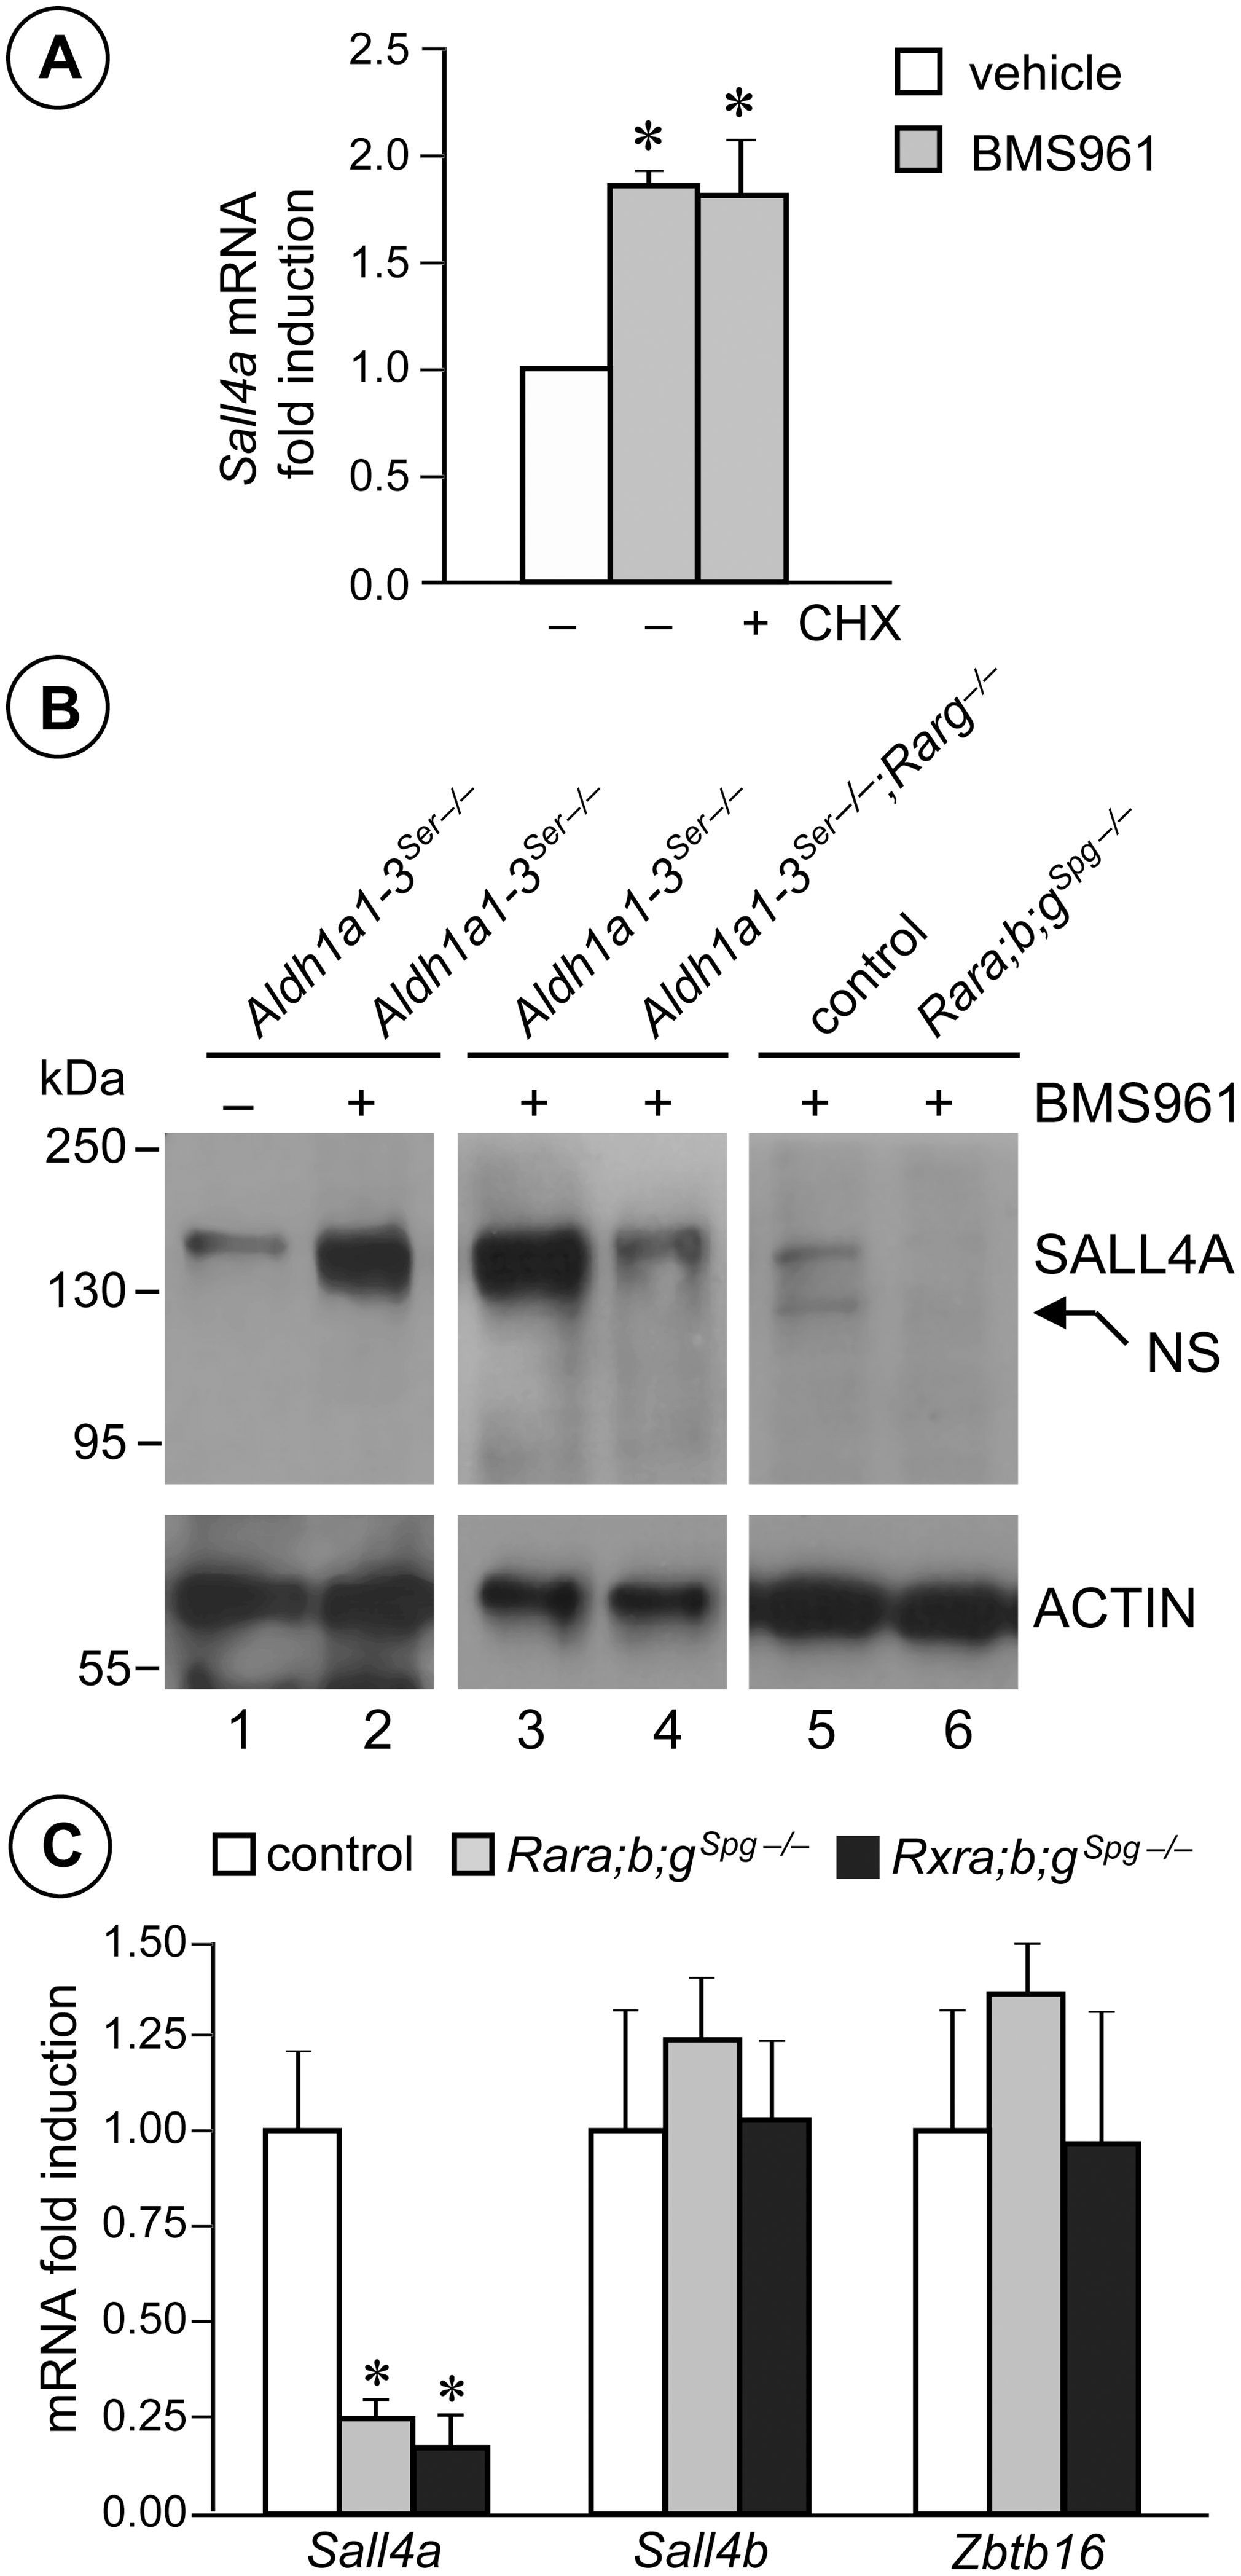 <i>Sall4a</i> expression in undifferentiated spermatogonia is controlled by ligand-activated RARG.